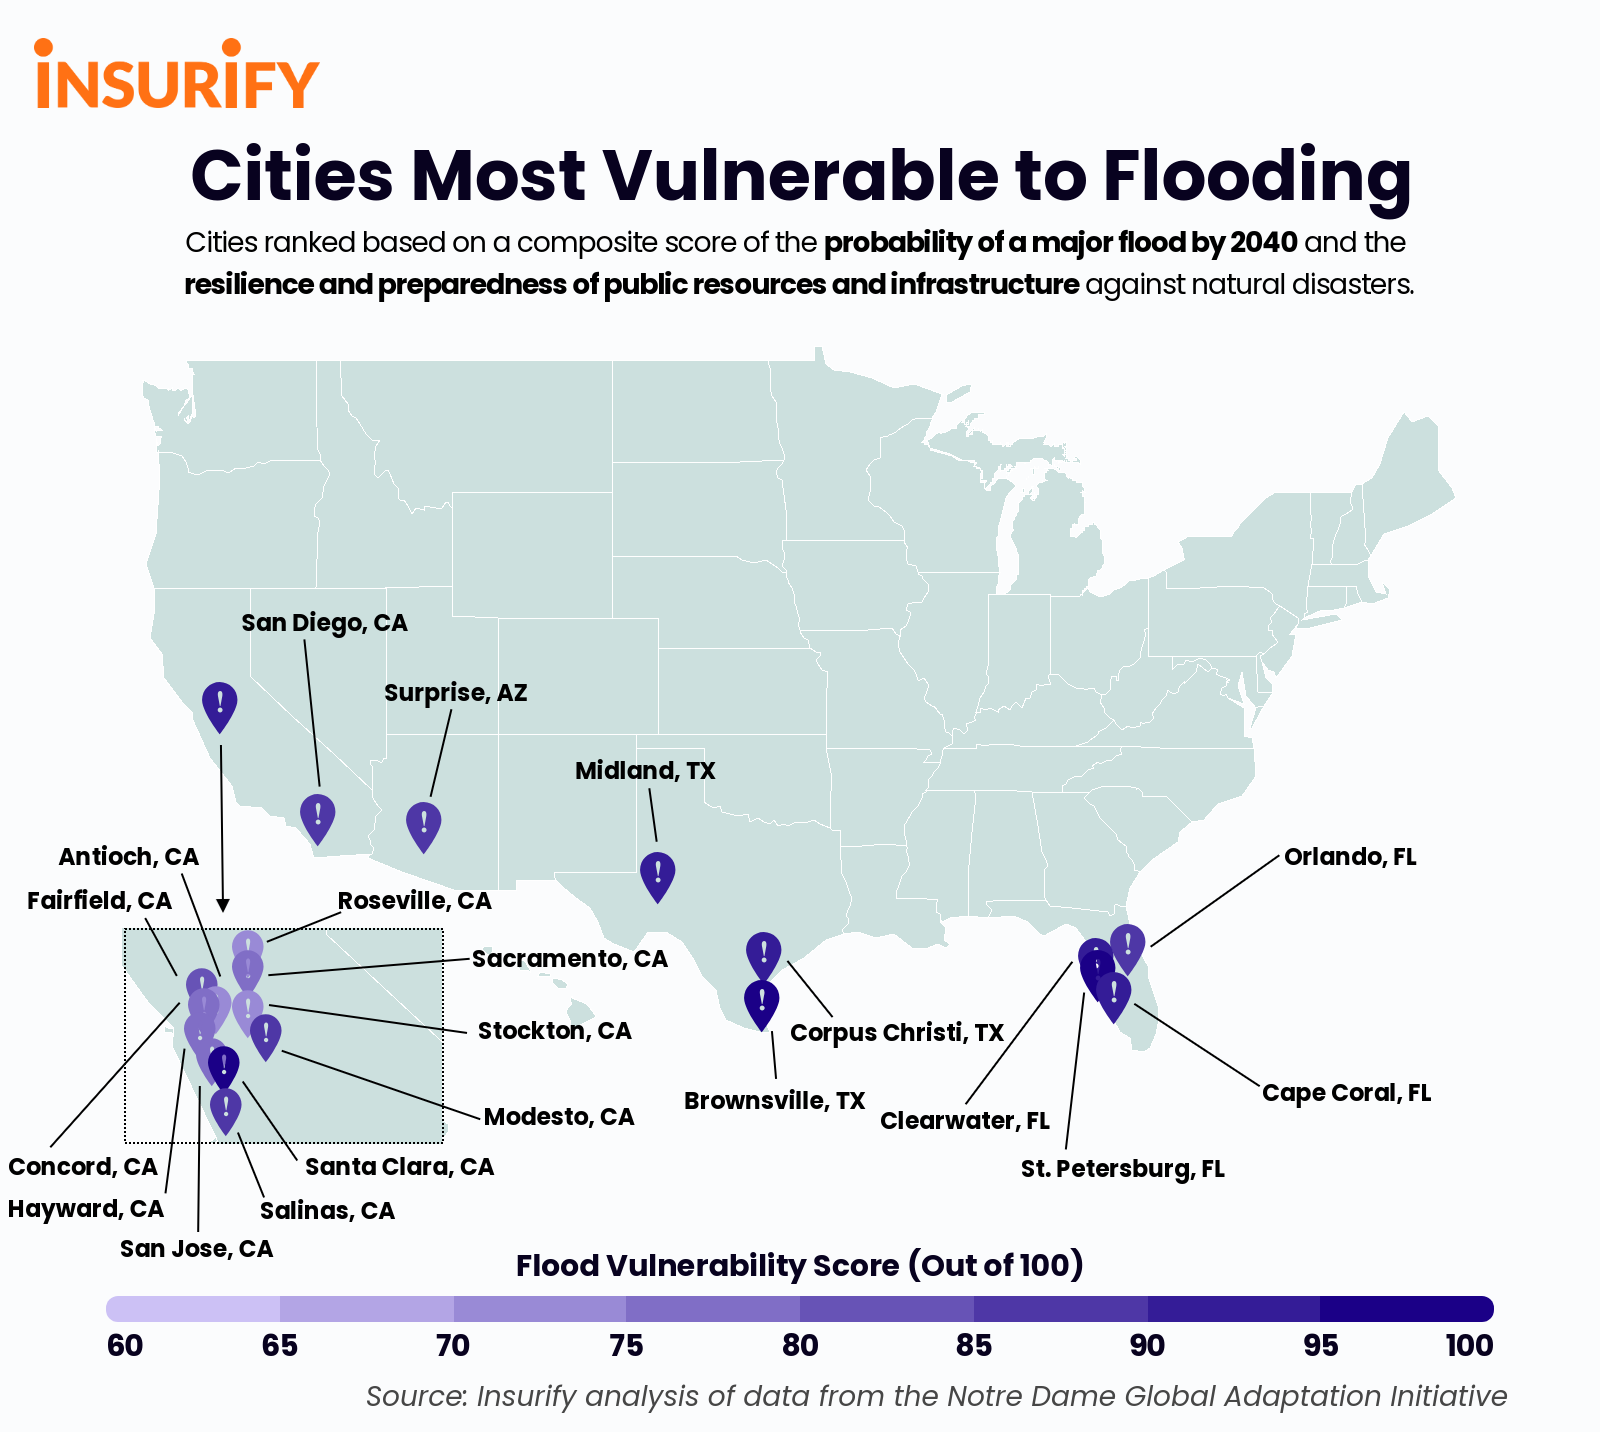 Heat Map of the Cities with the Highest Flooding Risk